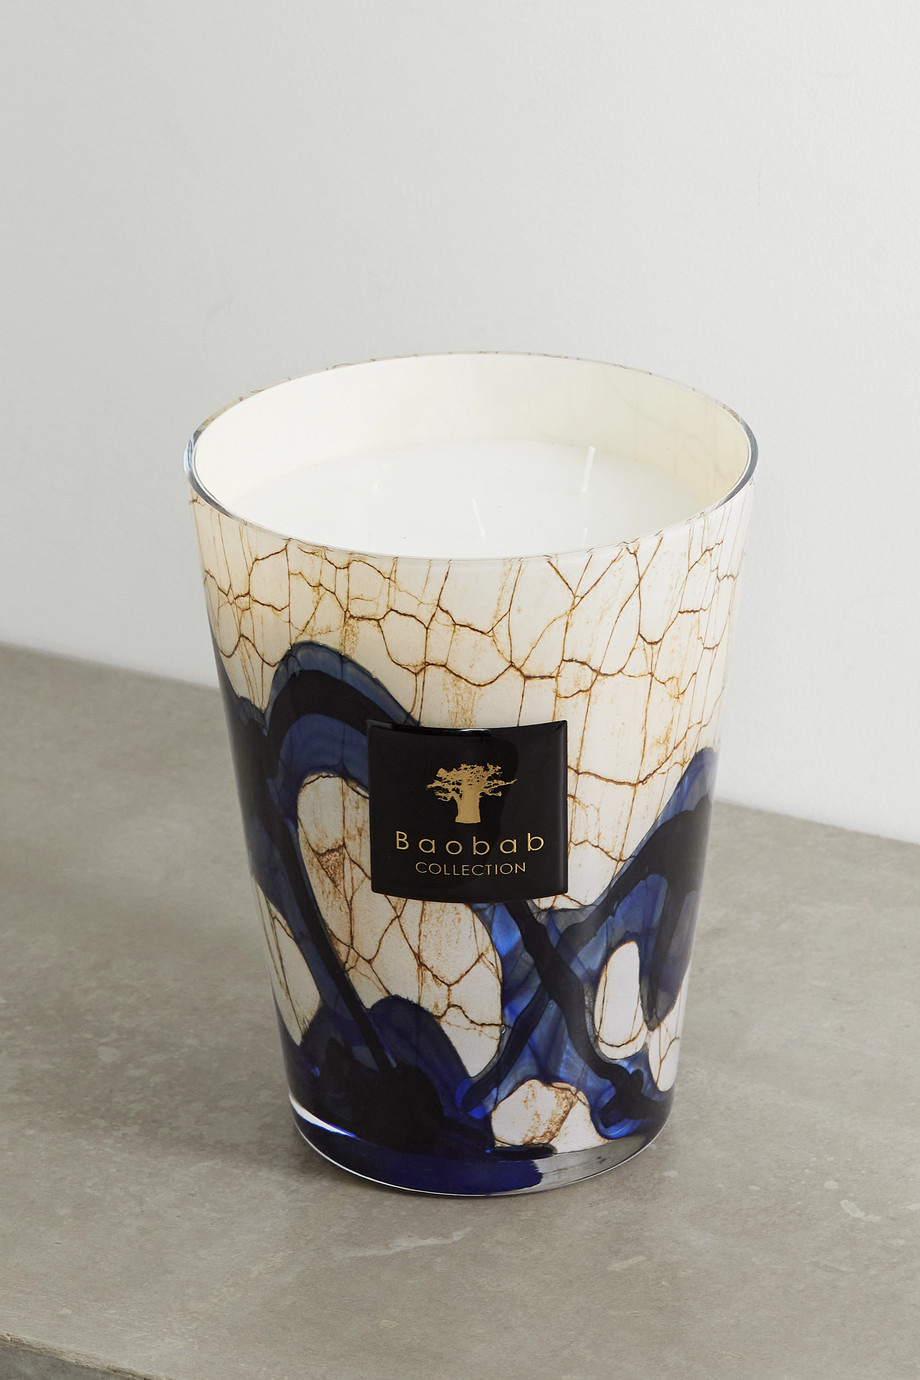 Baobab Collection Stones Lazuli Max 24 scented candle, 5kg